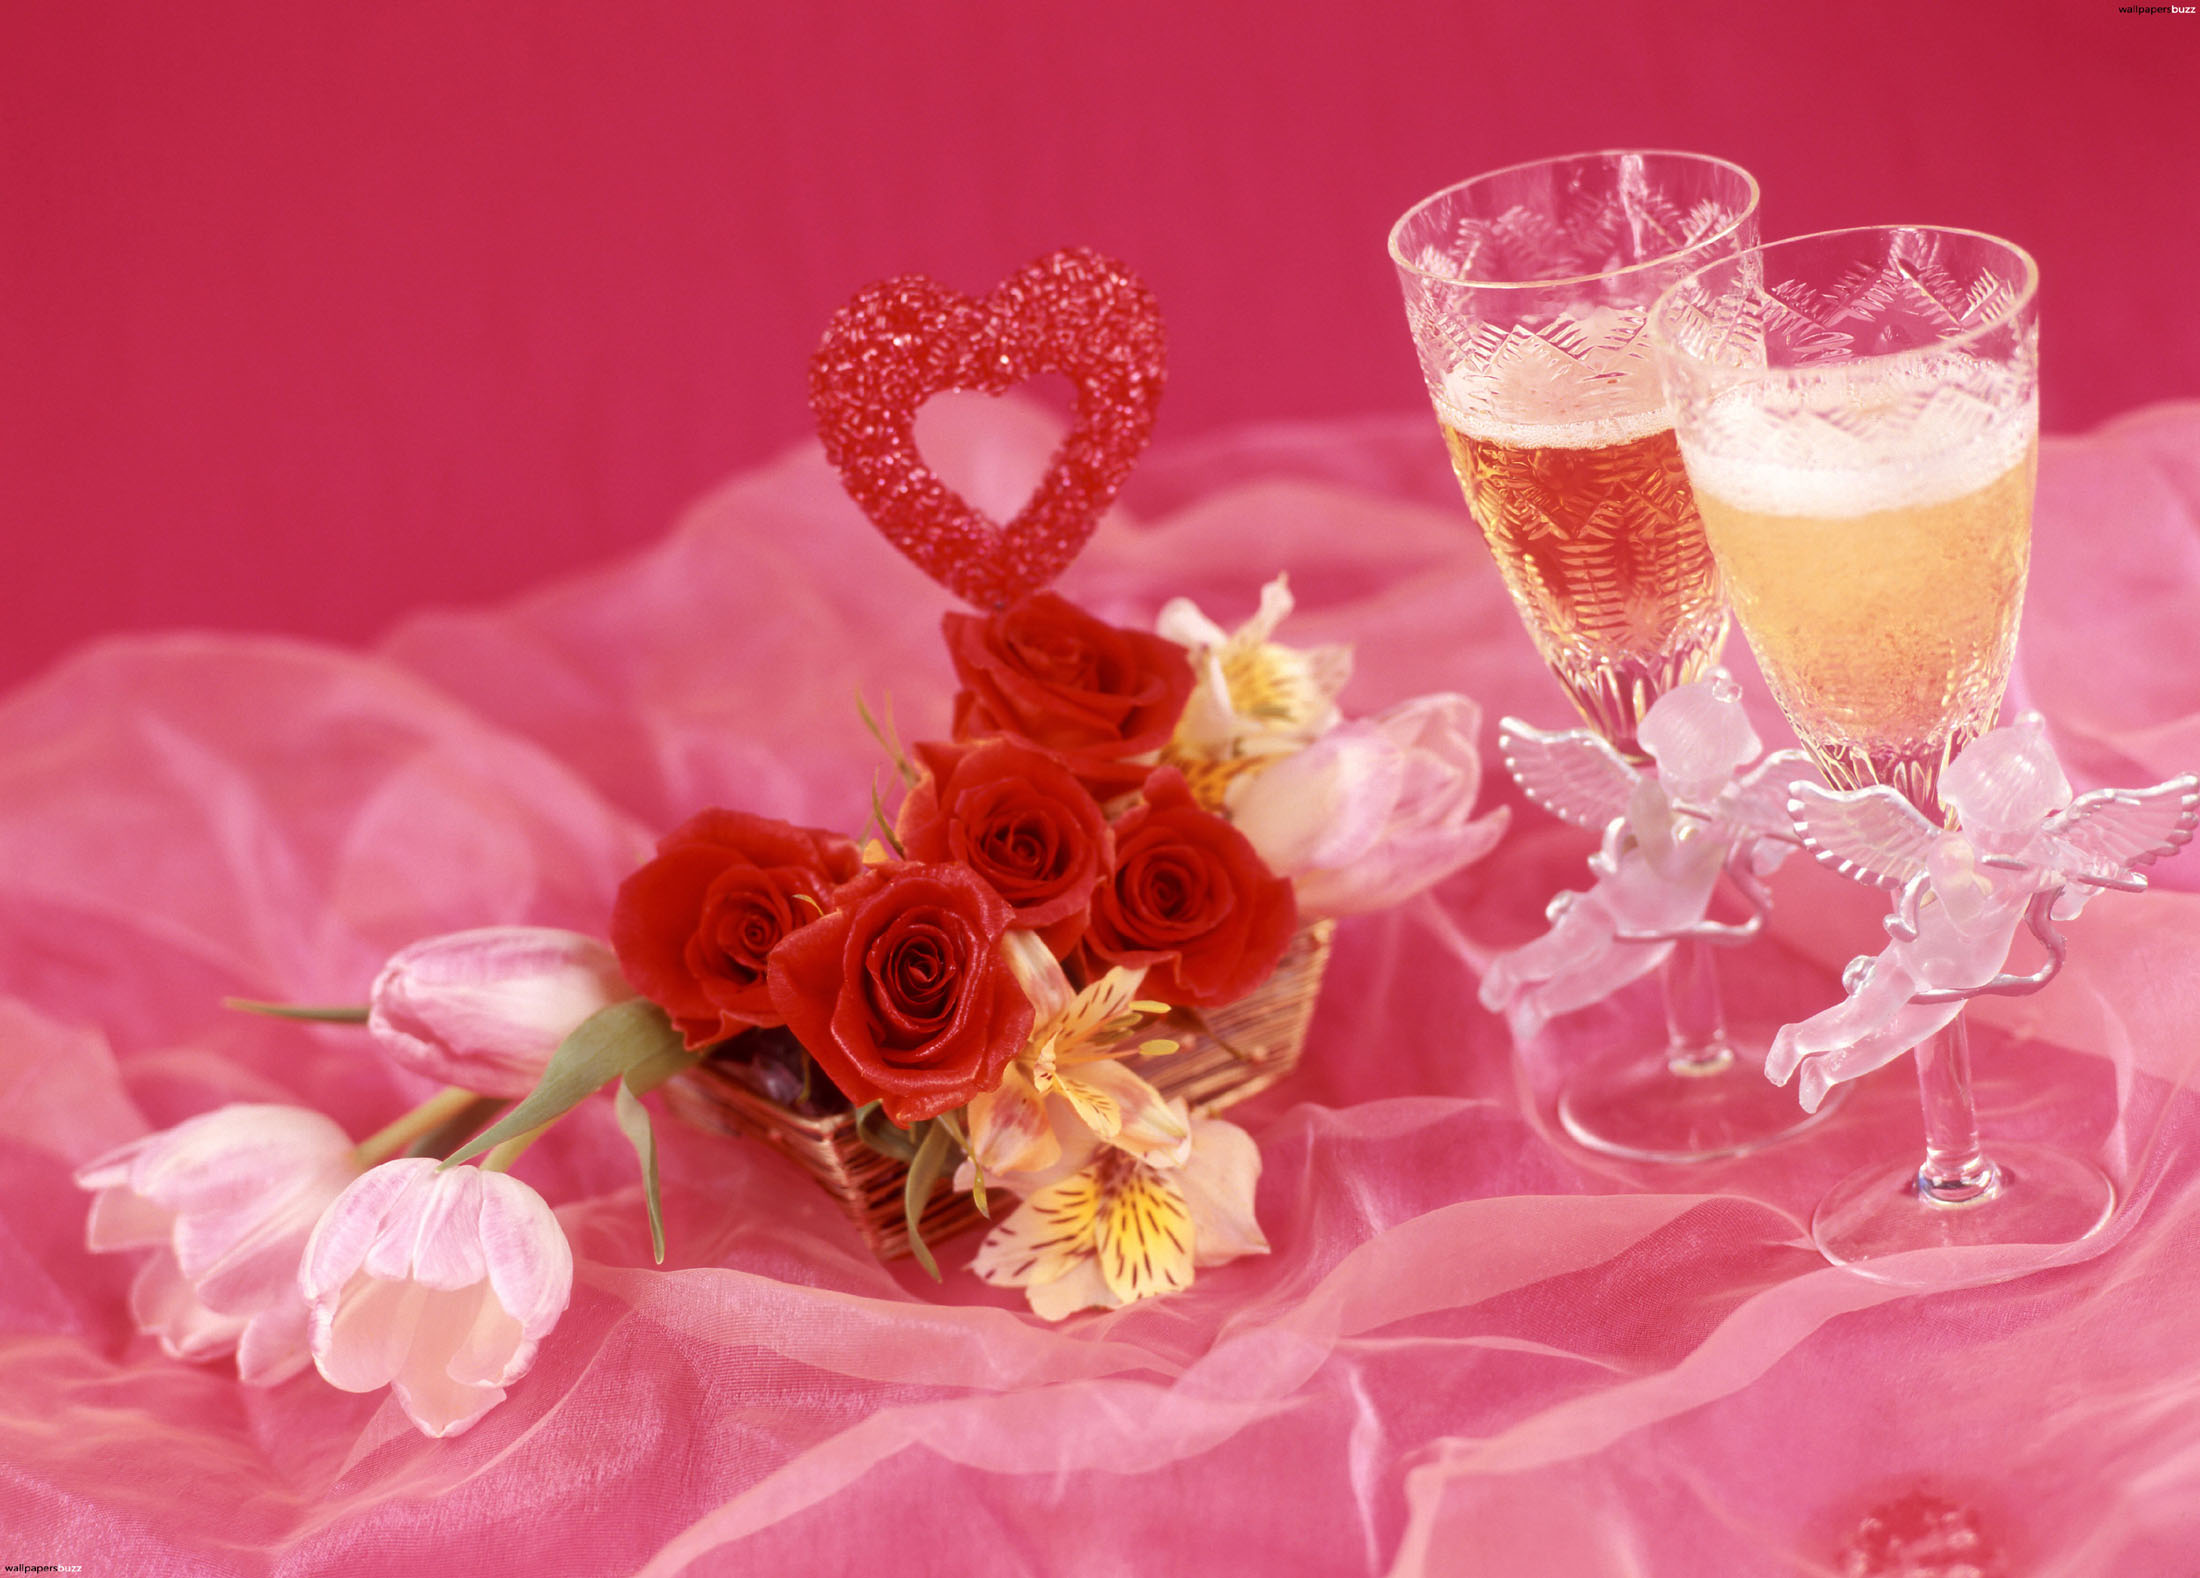 40 Beautiful Valentines Day Wallpapers For Desktop 2200x1578